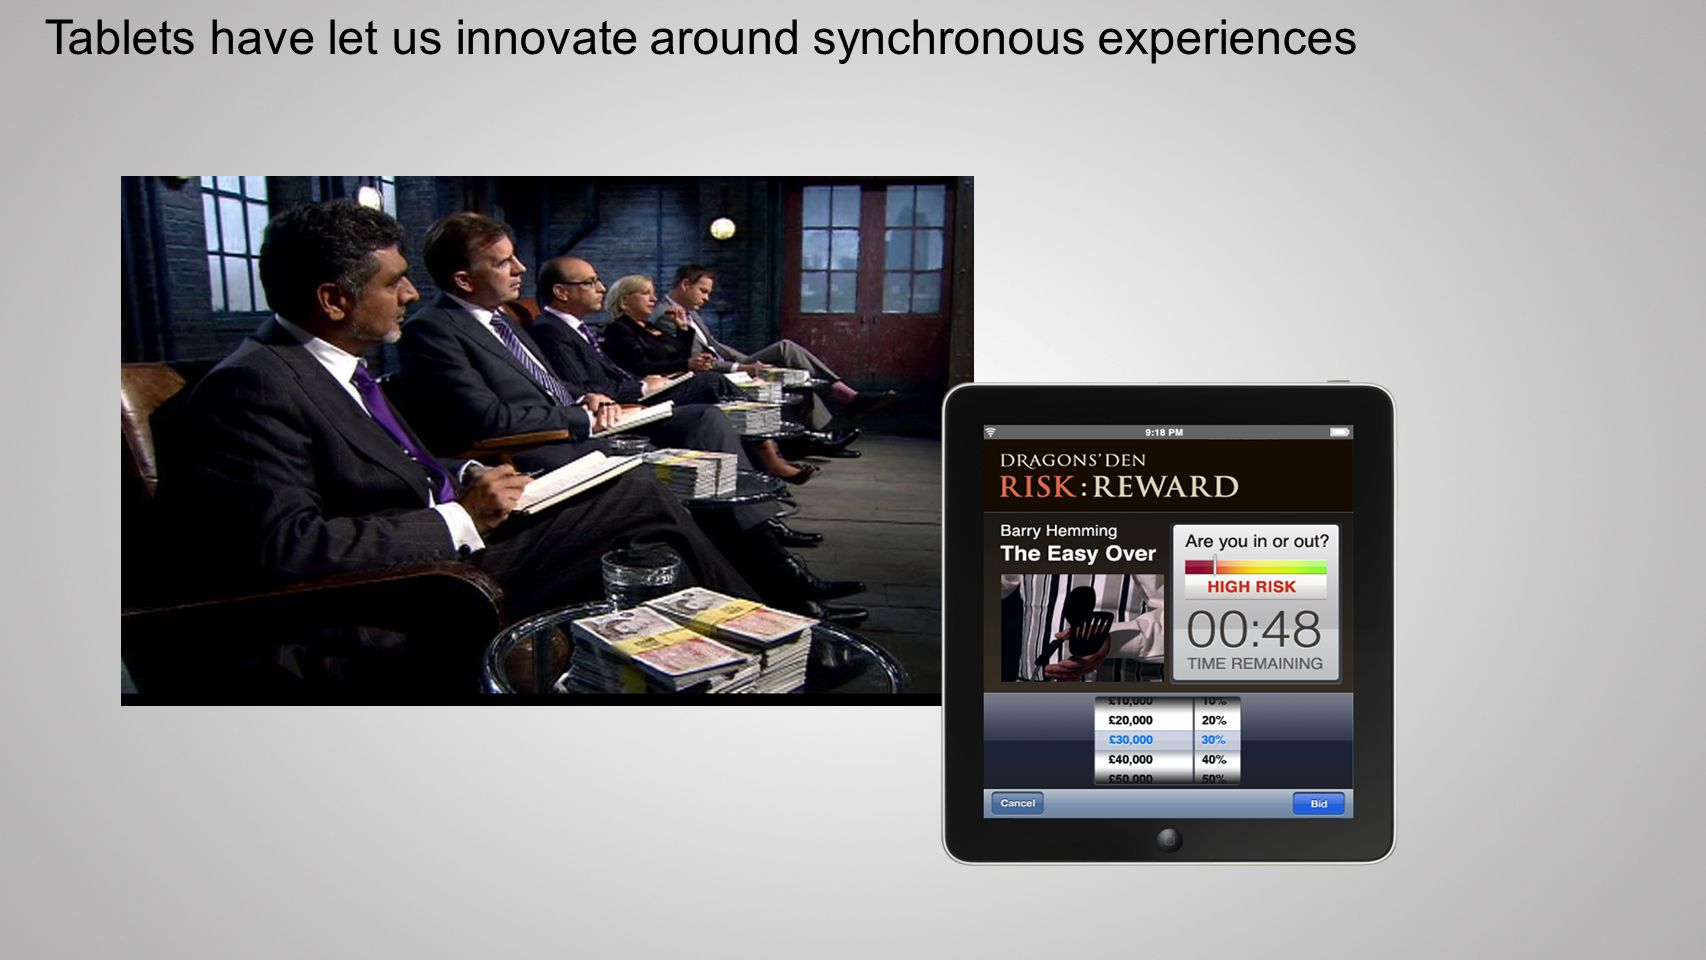 Tablets have let us innovate around synchronous experiences